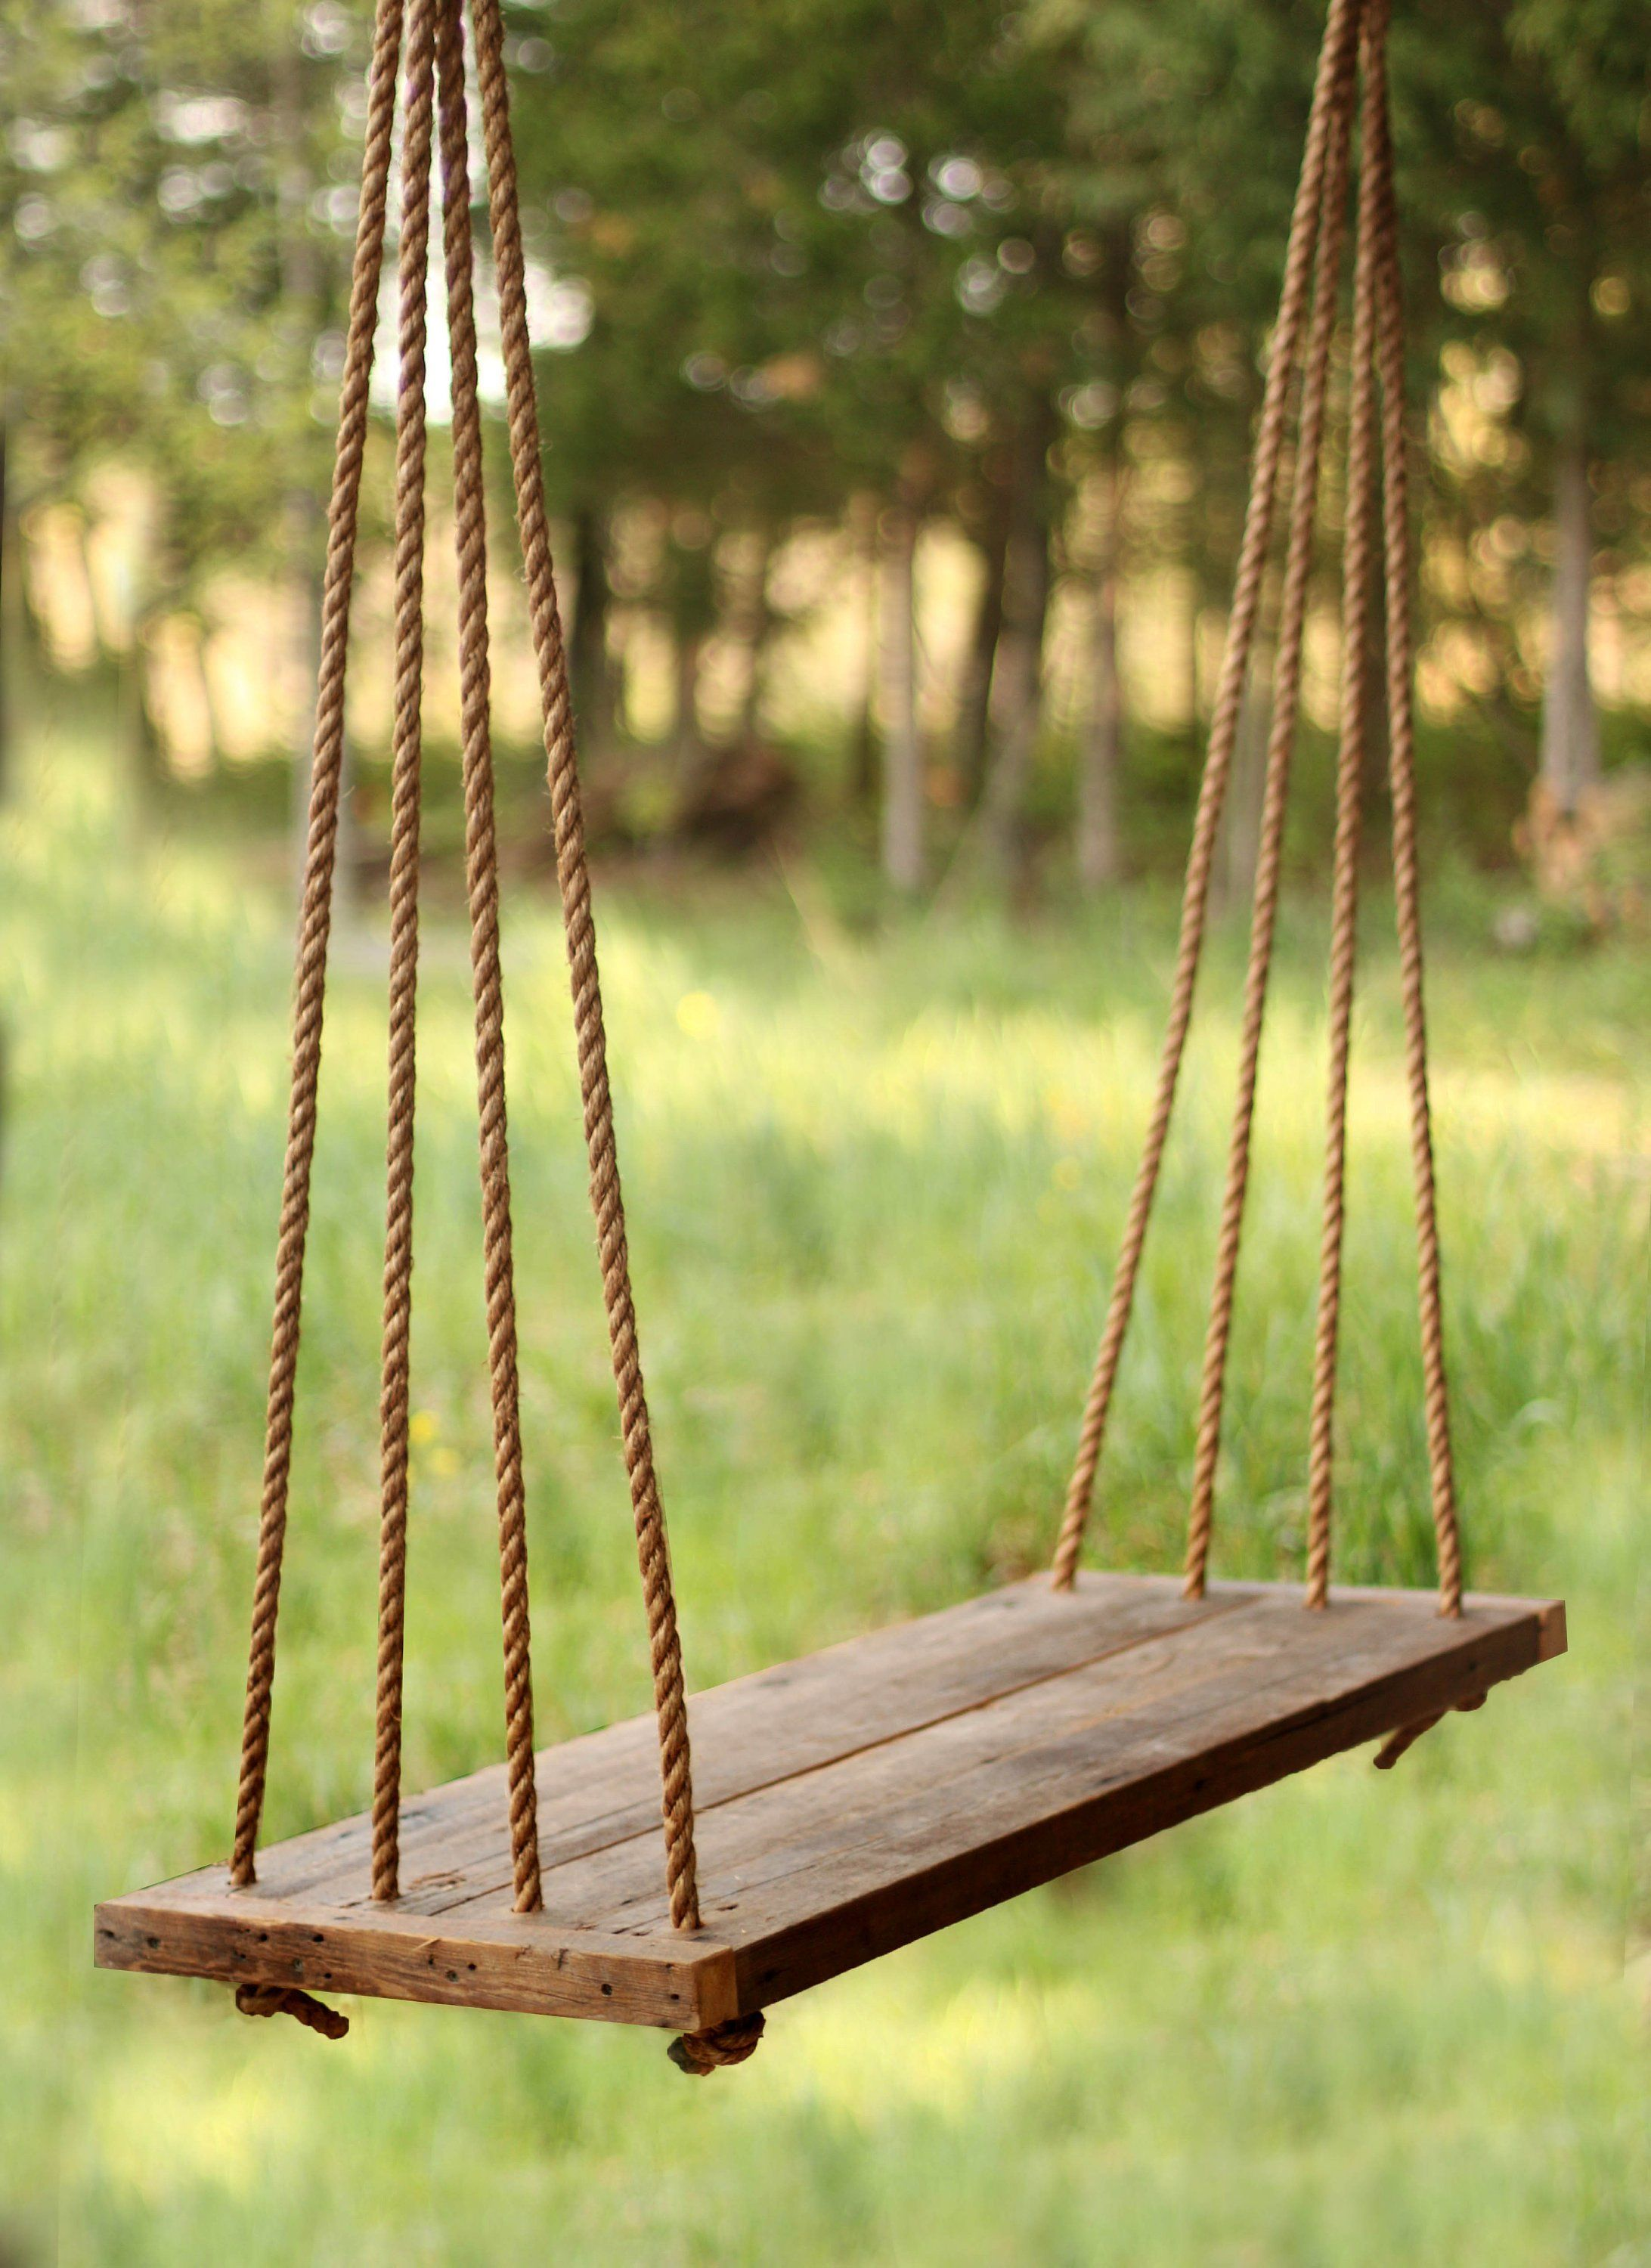 Porch Swing Bench Outdoor Seating Rope Swing Tree Swing With Images Porch Swing Swing Chair Outdoor Rope Swing